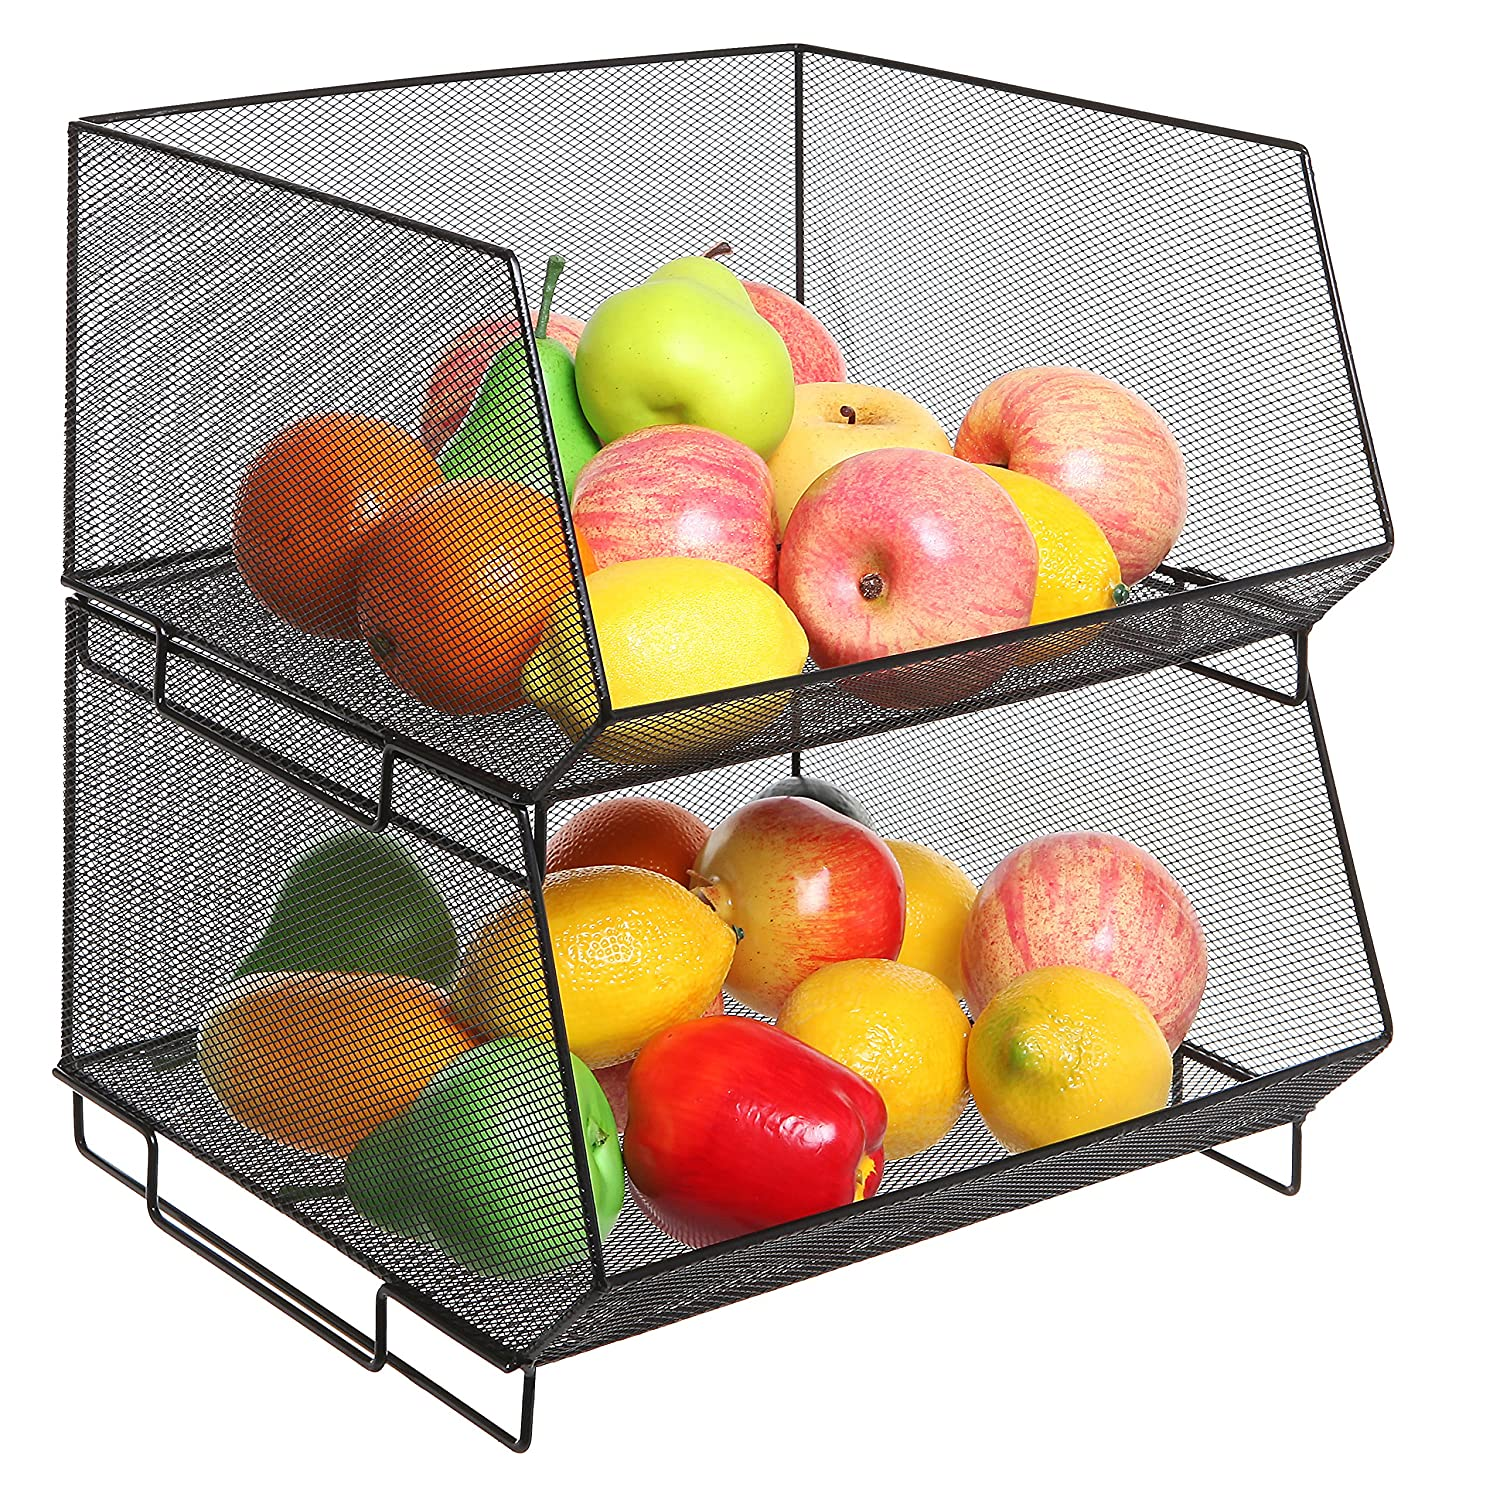 set carlson merchandising display photo produce airflo wet vertical rack systems large